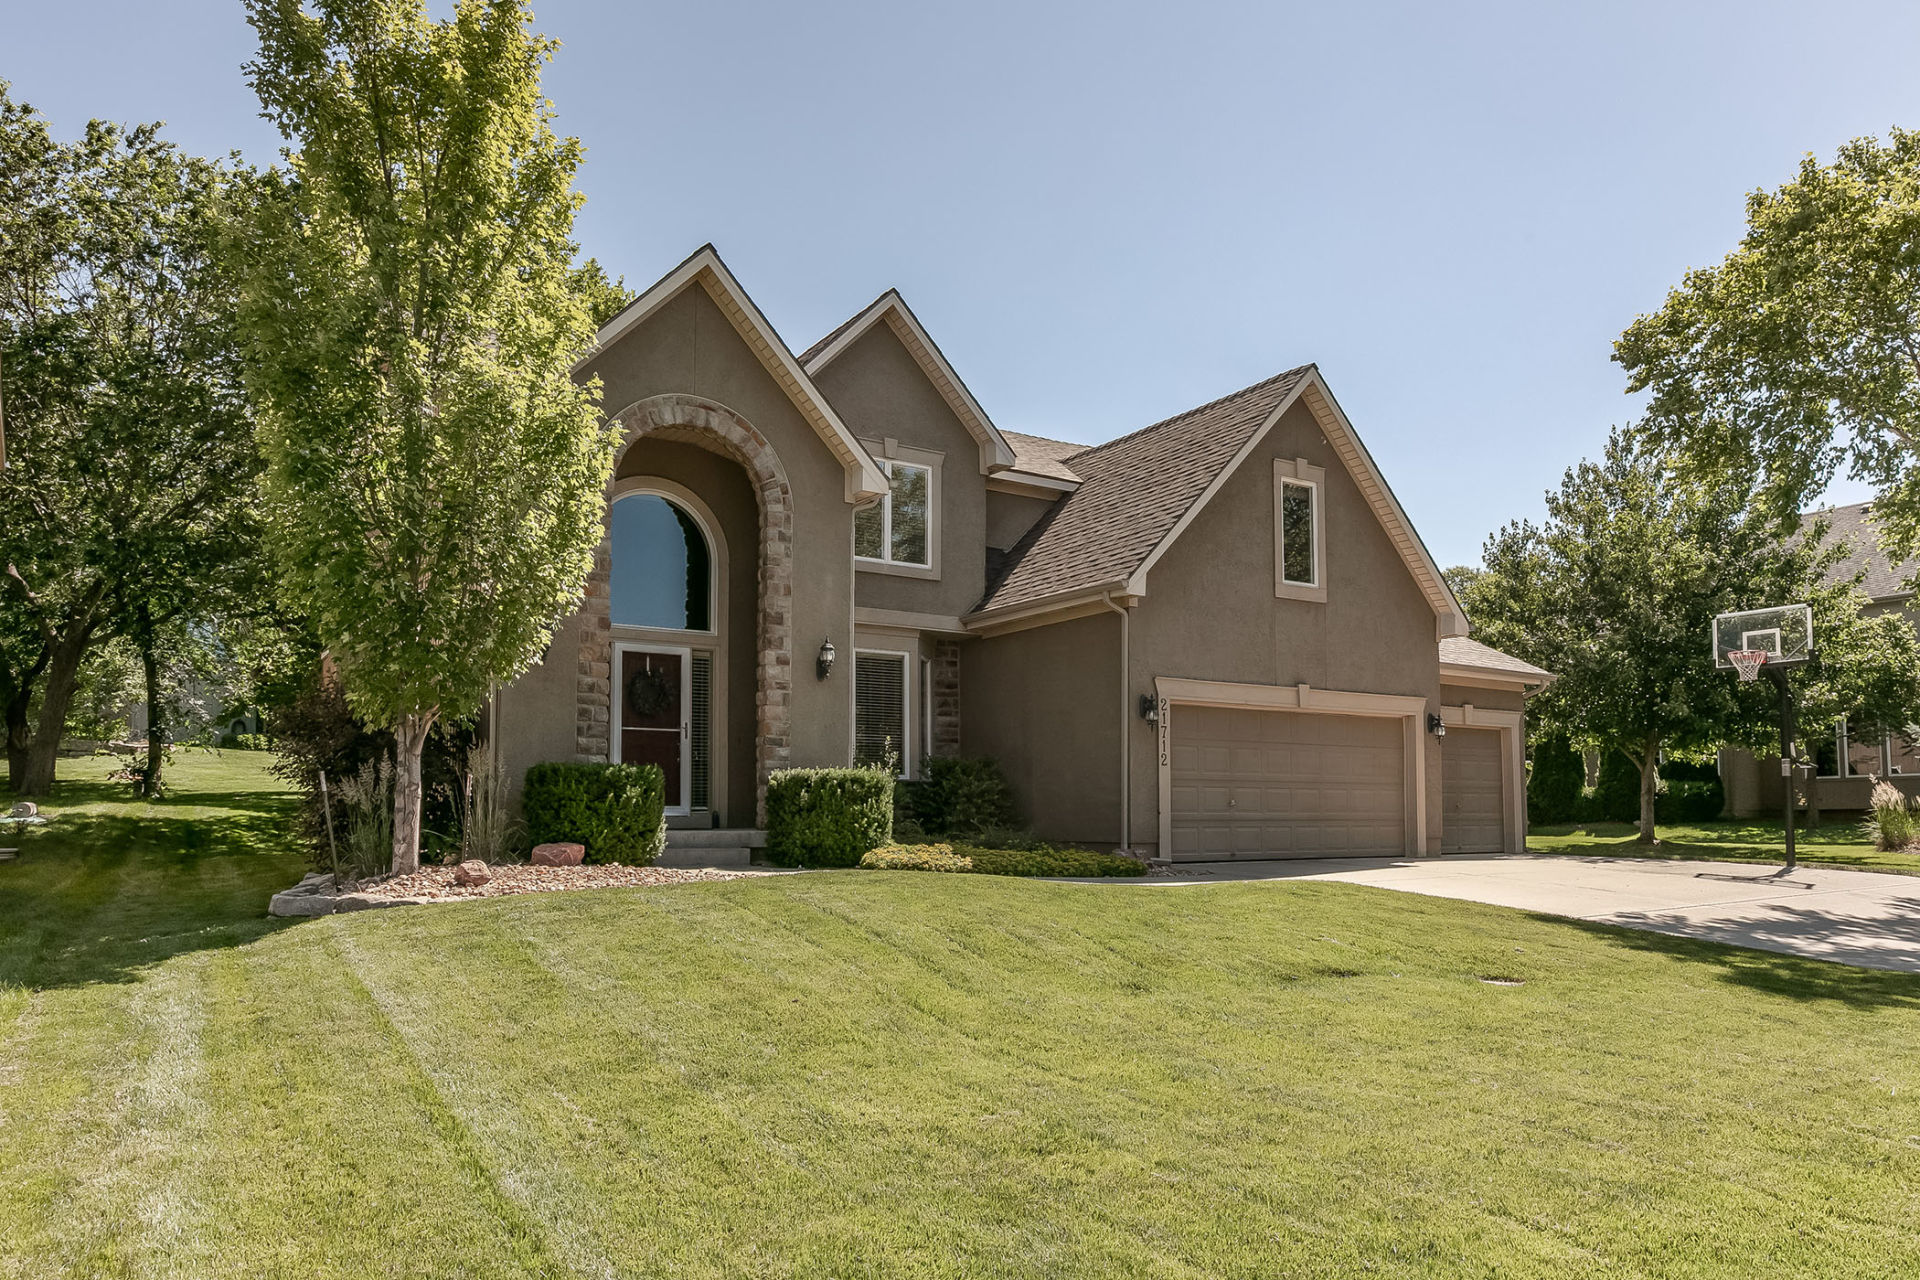 JUST LISTED! First OPEN HOUSE! WOW Curb Appeal in Shawnee!